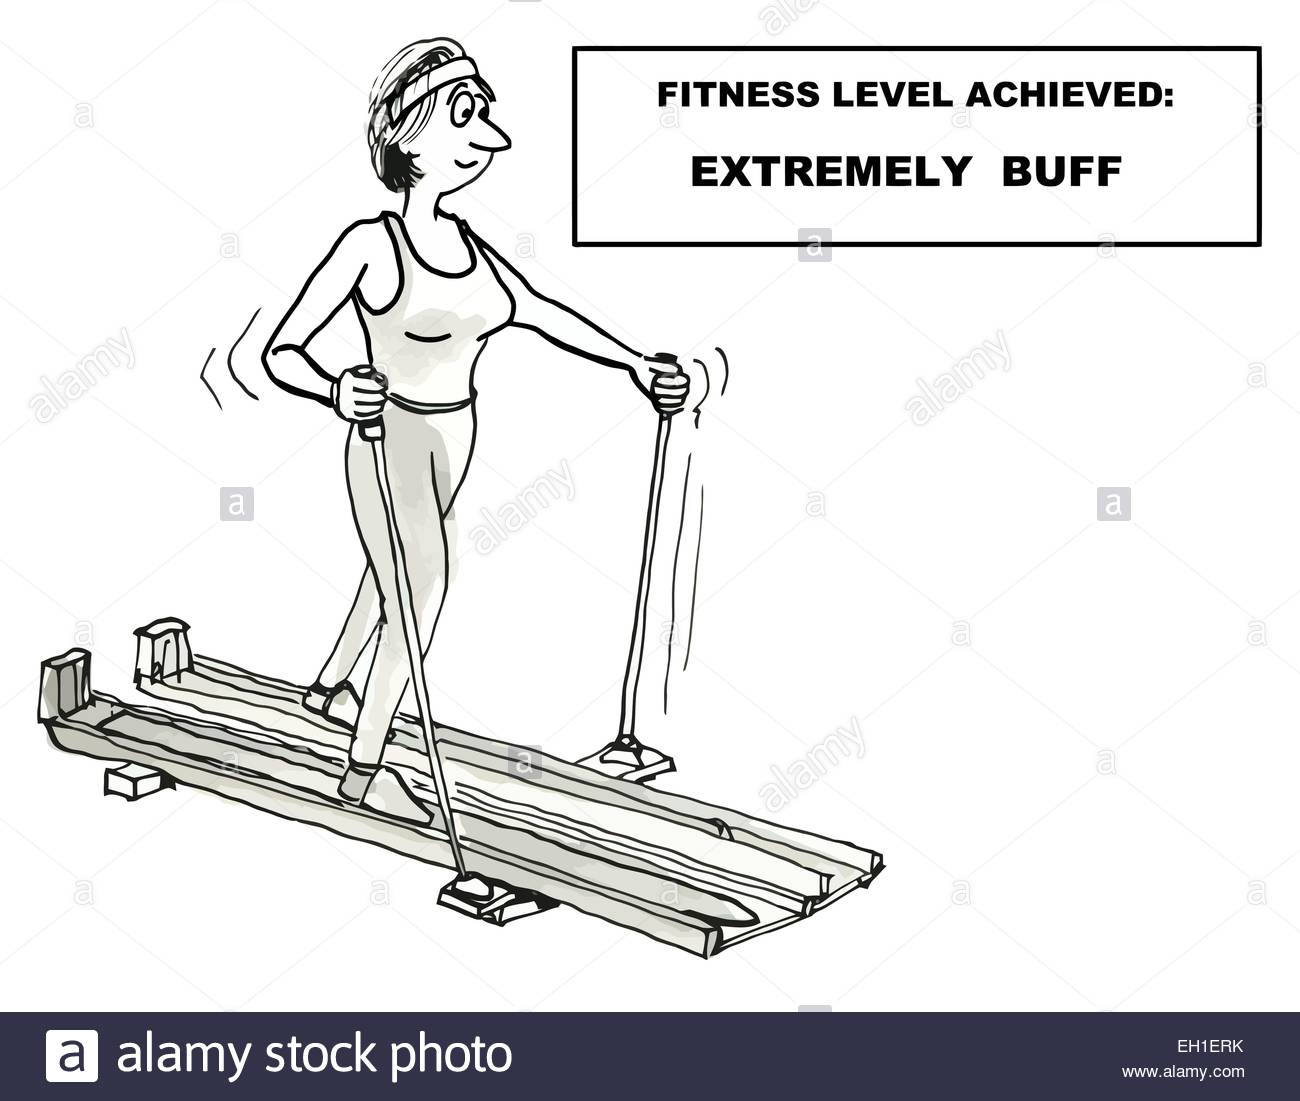 Cartoon of woman exercising - fitness level achieved: extremely buff. - Stock Vector